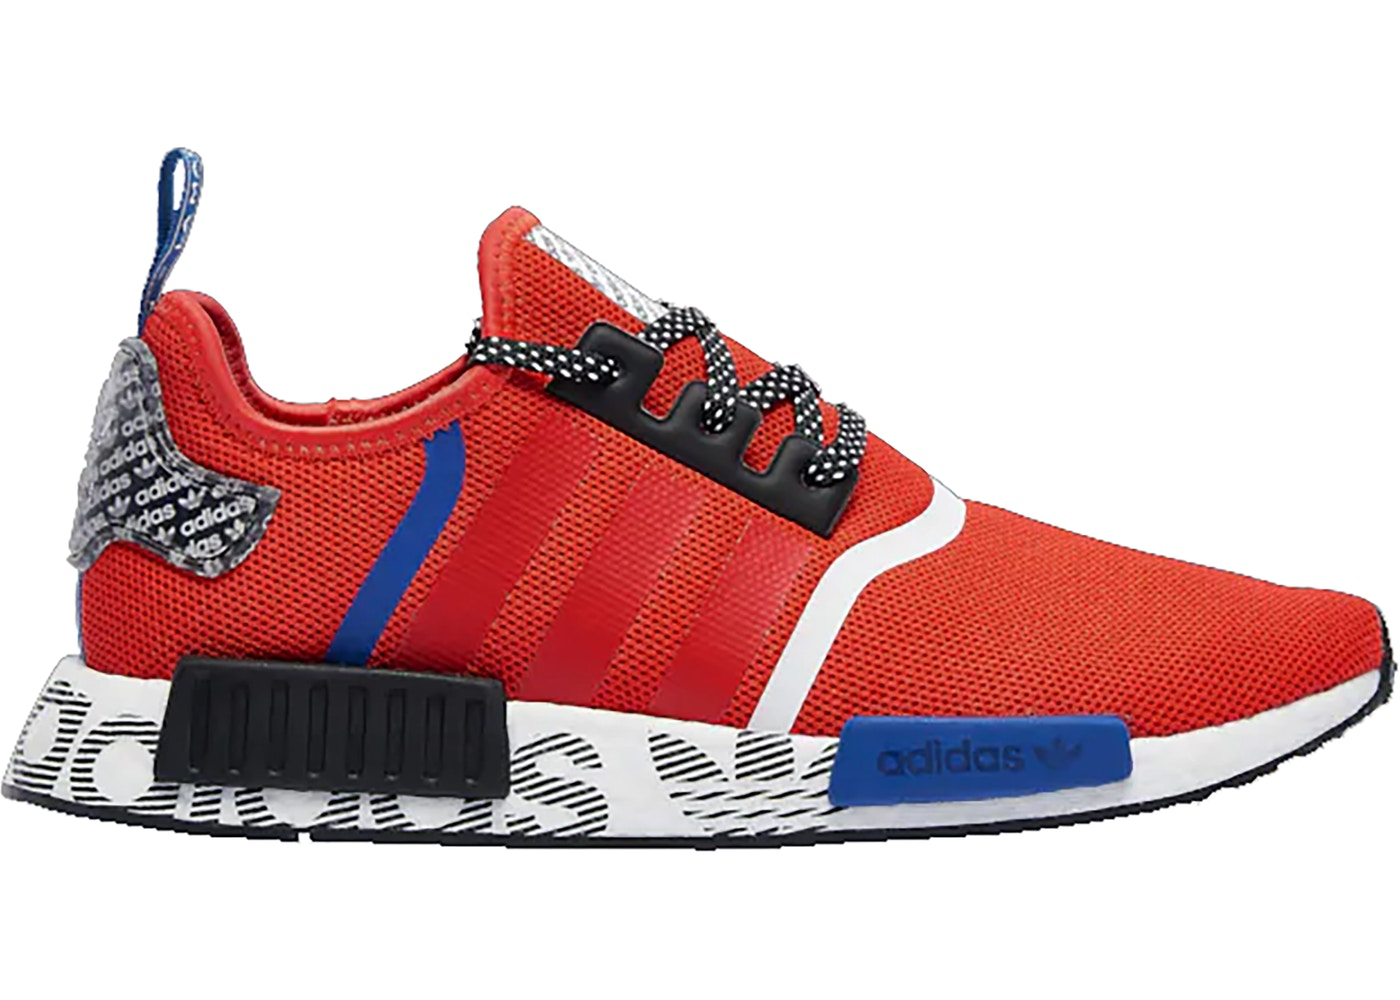 adidas nmd r1 active red